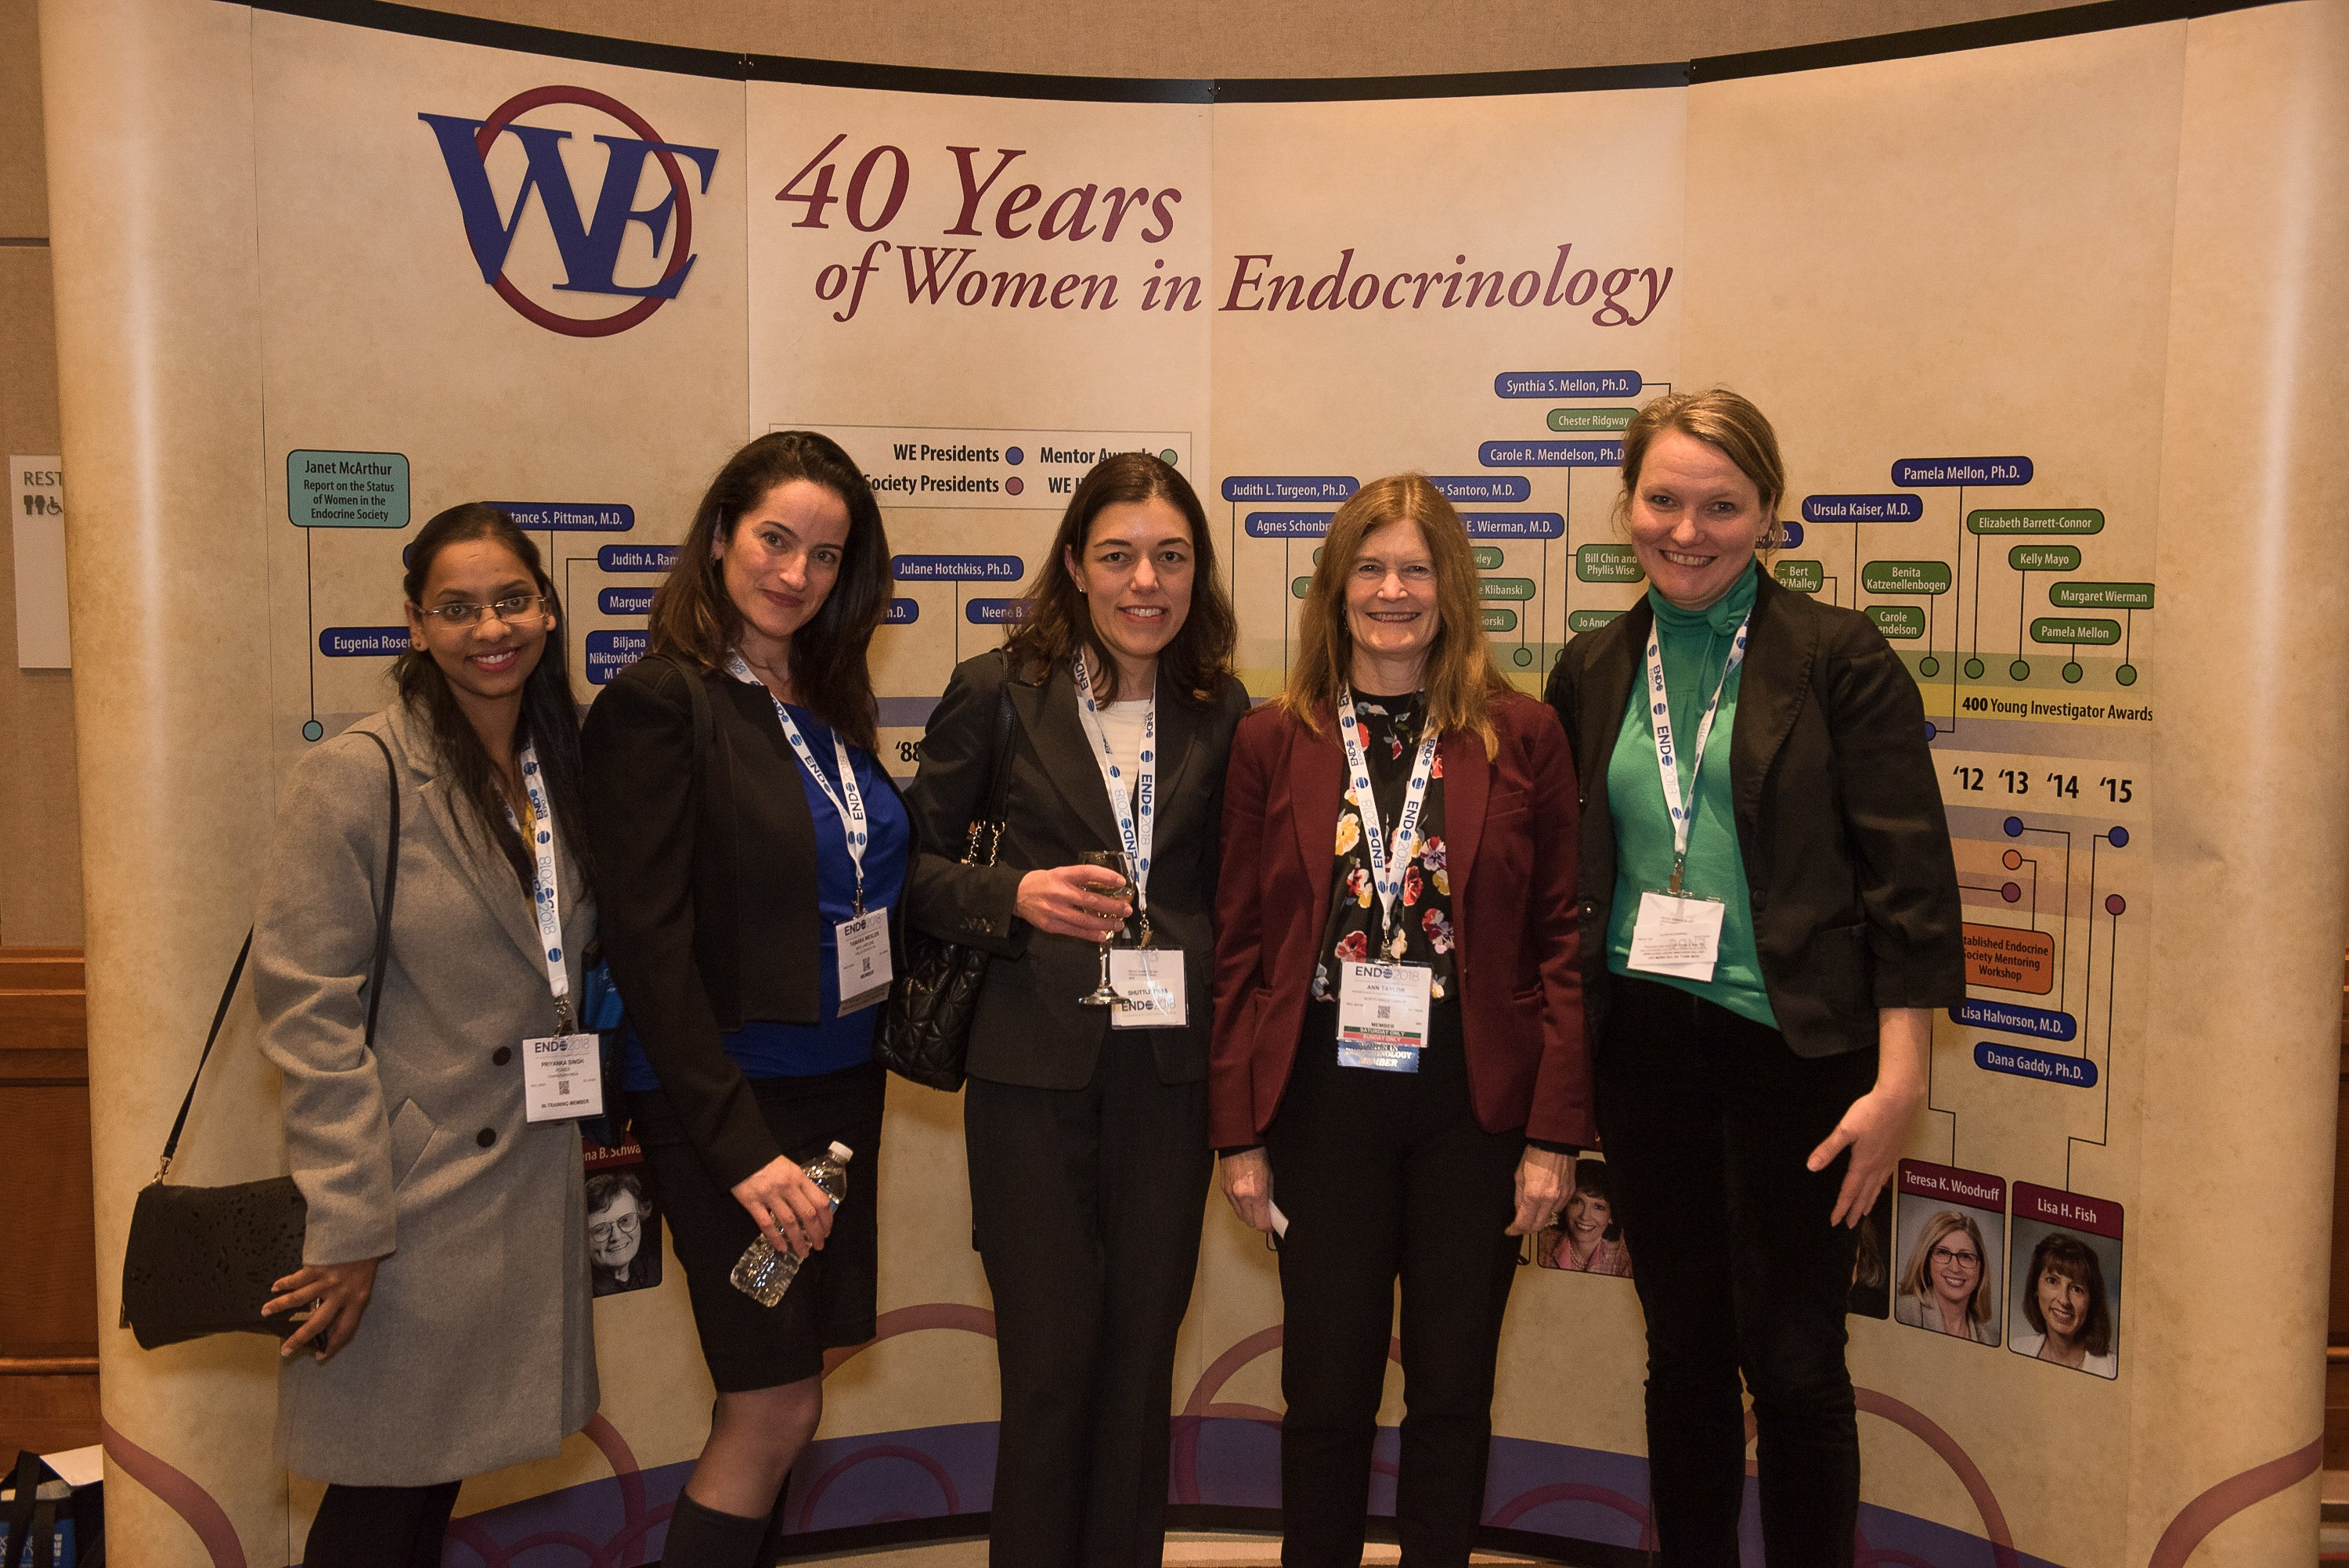 Women in Endocrinology